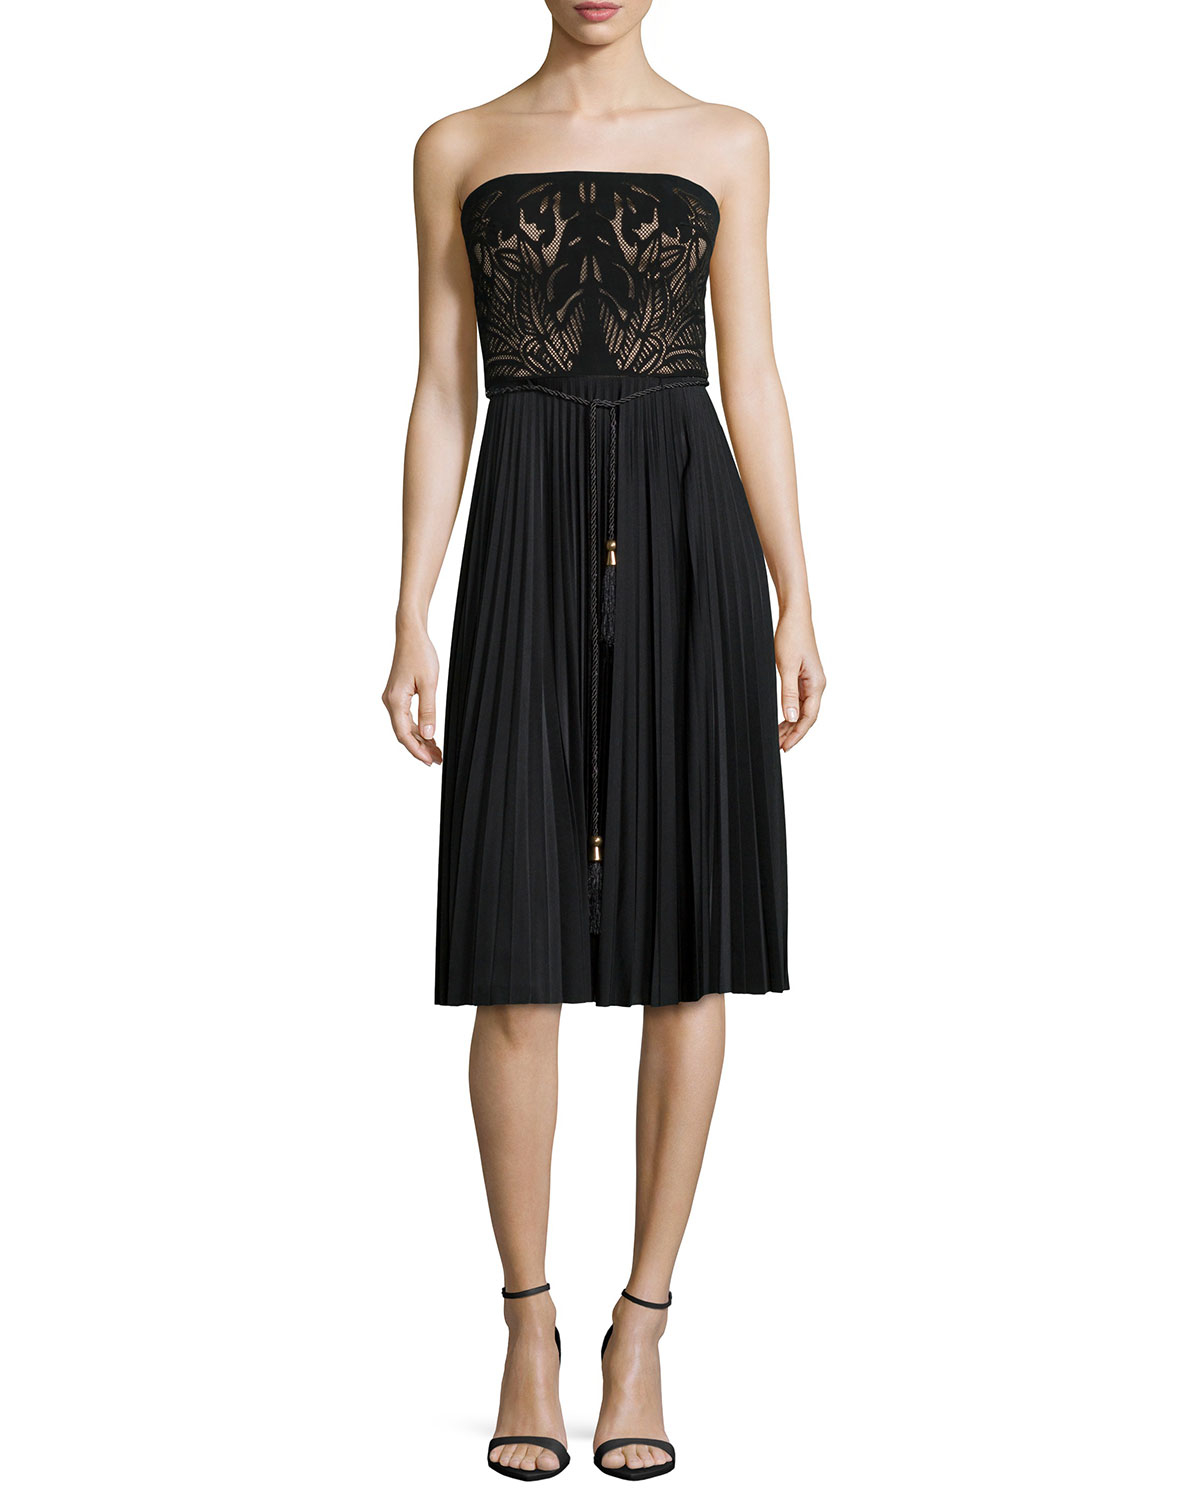 catherine deane strapless combo belted cocktail dress in